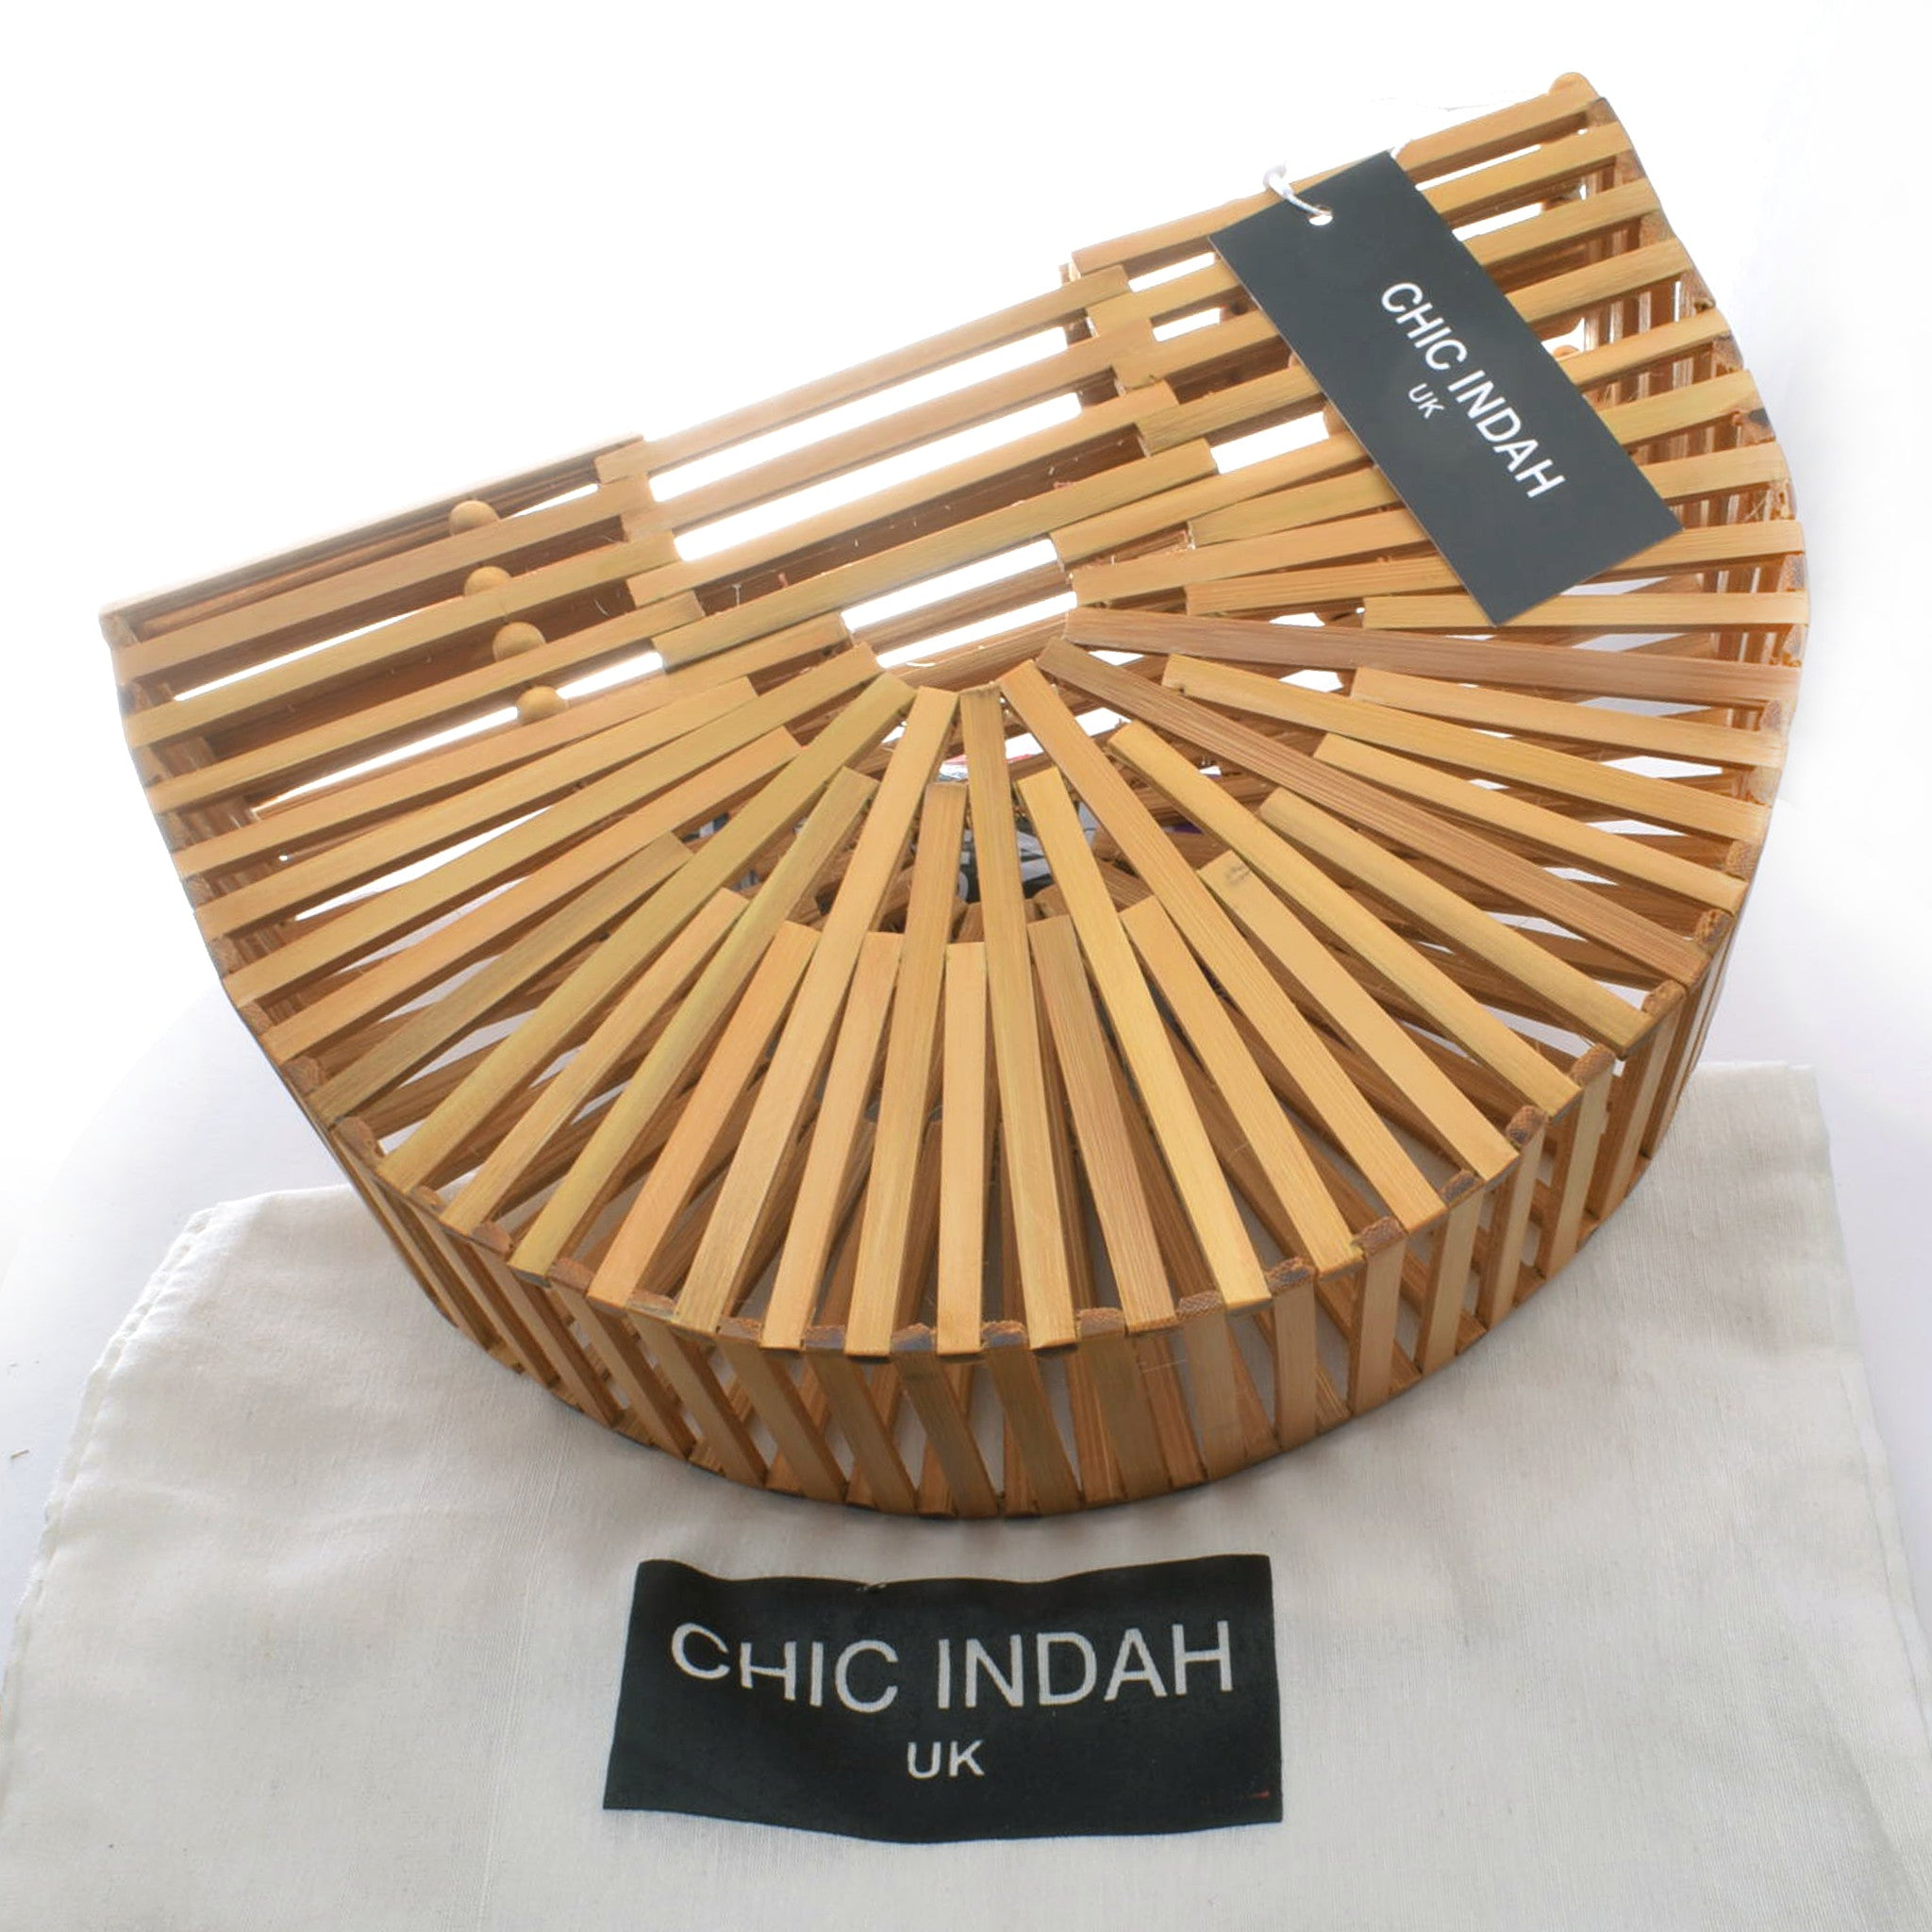 The Chic Bamboo